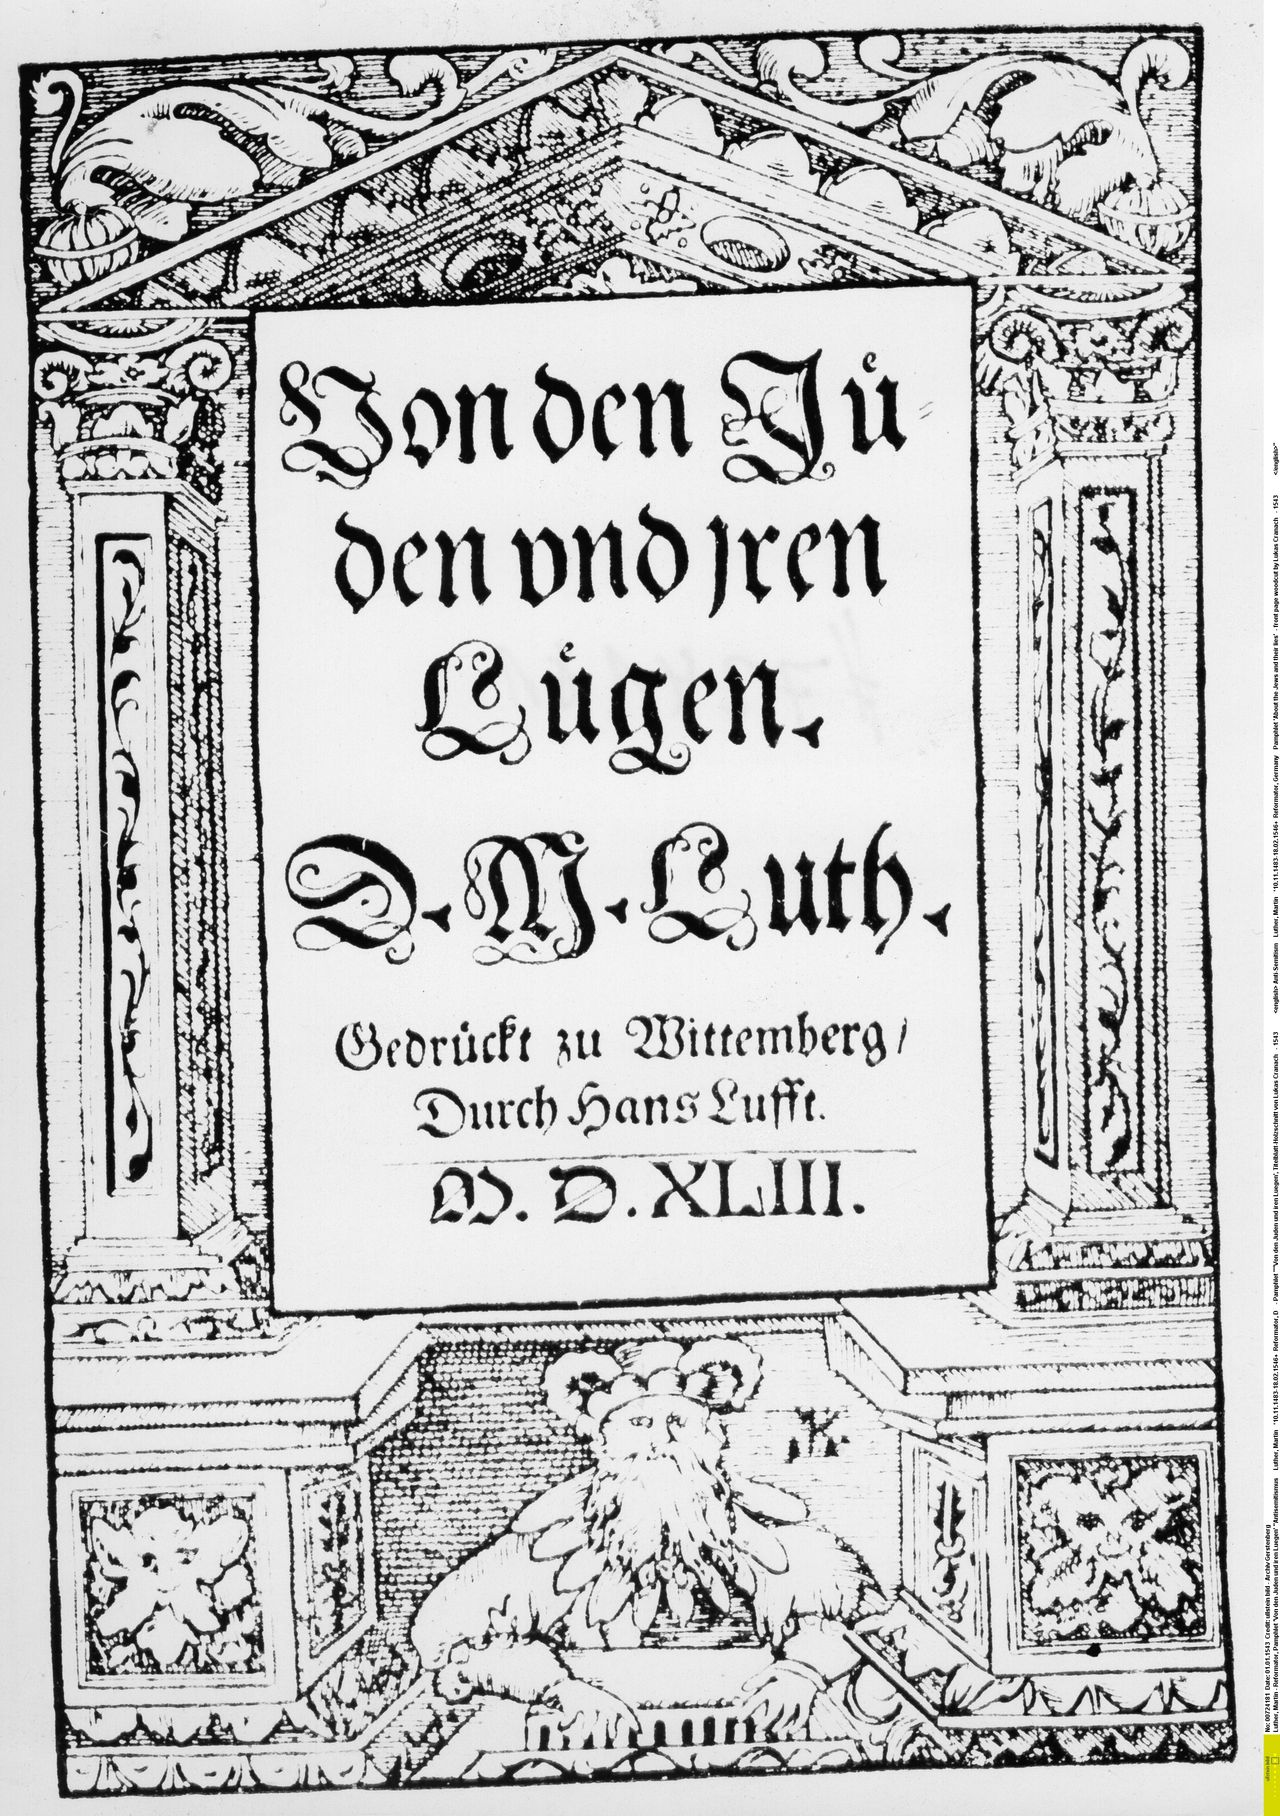 """Antisemitismus Luther, Martin *10.11.1483-18.02.1546+ Reformator, D - Pamphlet """"Von den Juden und iren Luegen', Titelblatt-Holzschnitt von Lukas Cranach - 1543 Anti-Semitism Luther, Martin *10.11.1483-18.02.1546+ Reformator, Germany Pamphlet 'About the Jews and their lies' - front page woodcut by Lukas Cranach - 1543 """